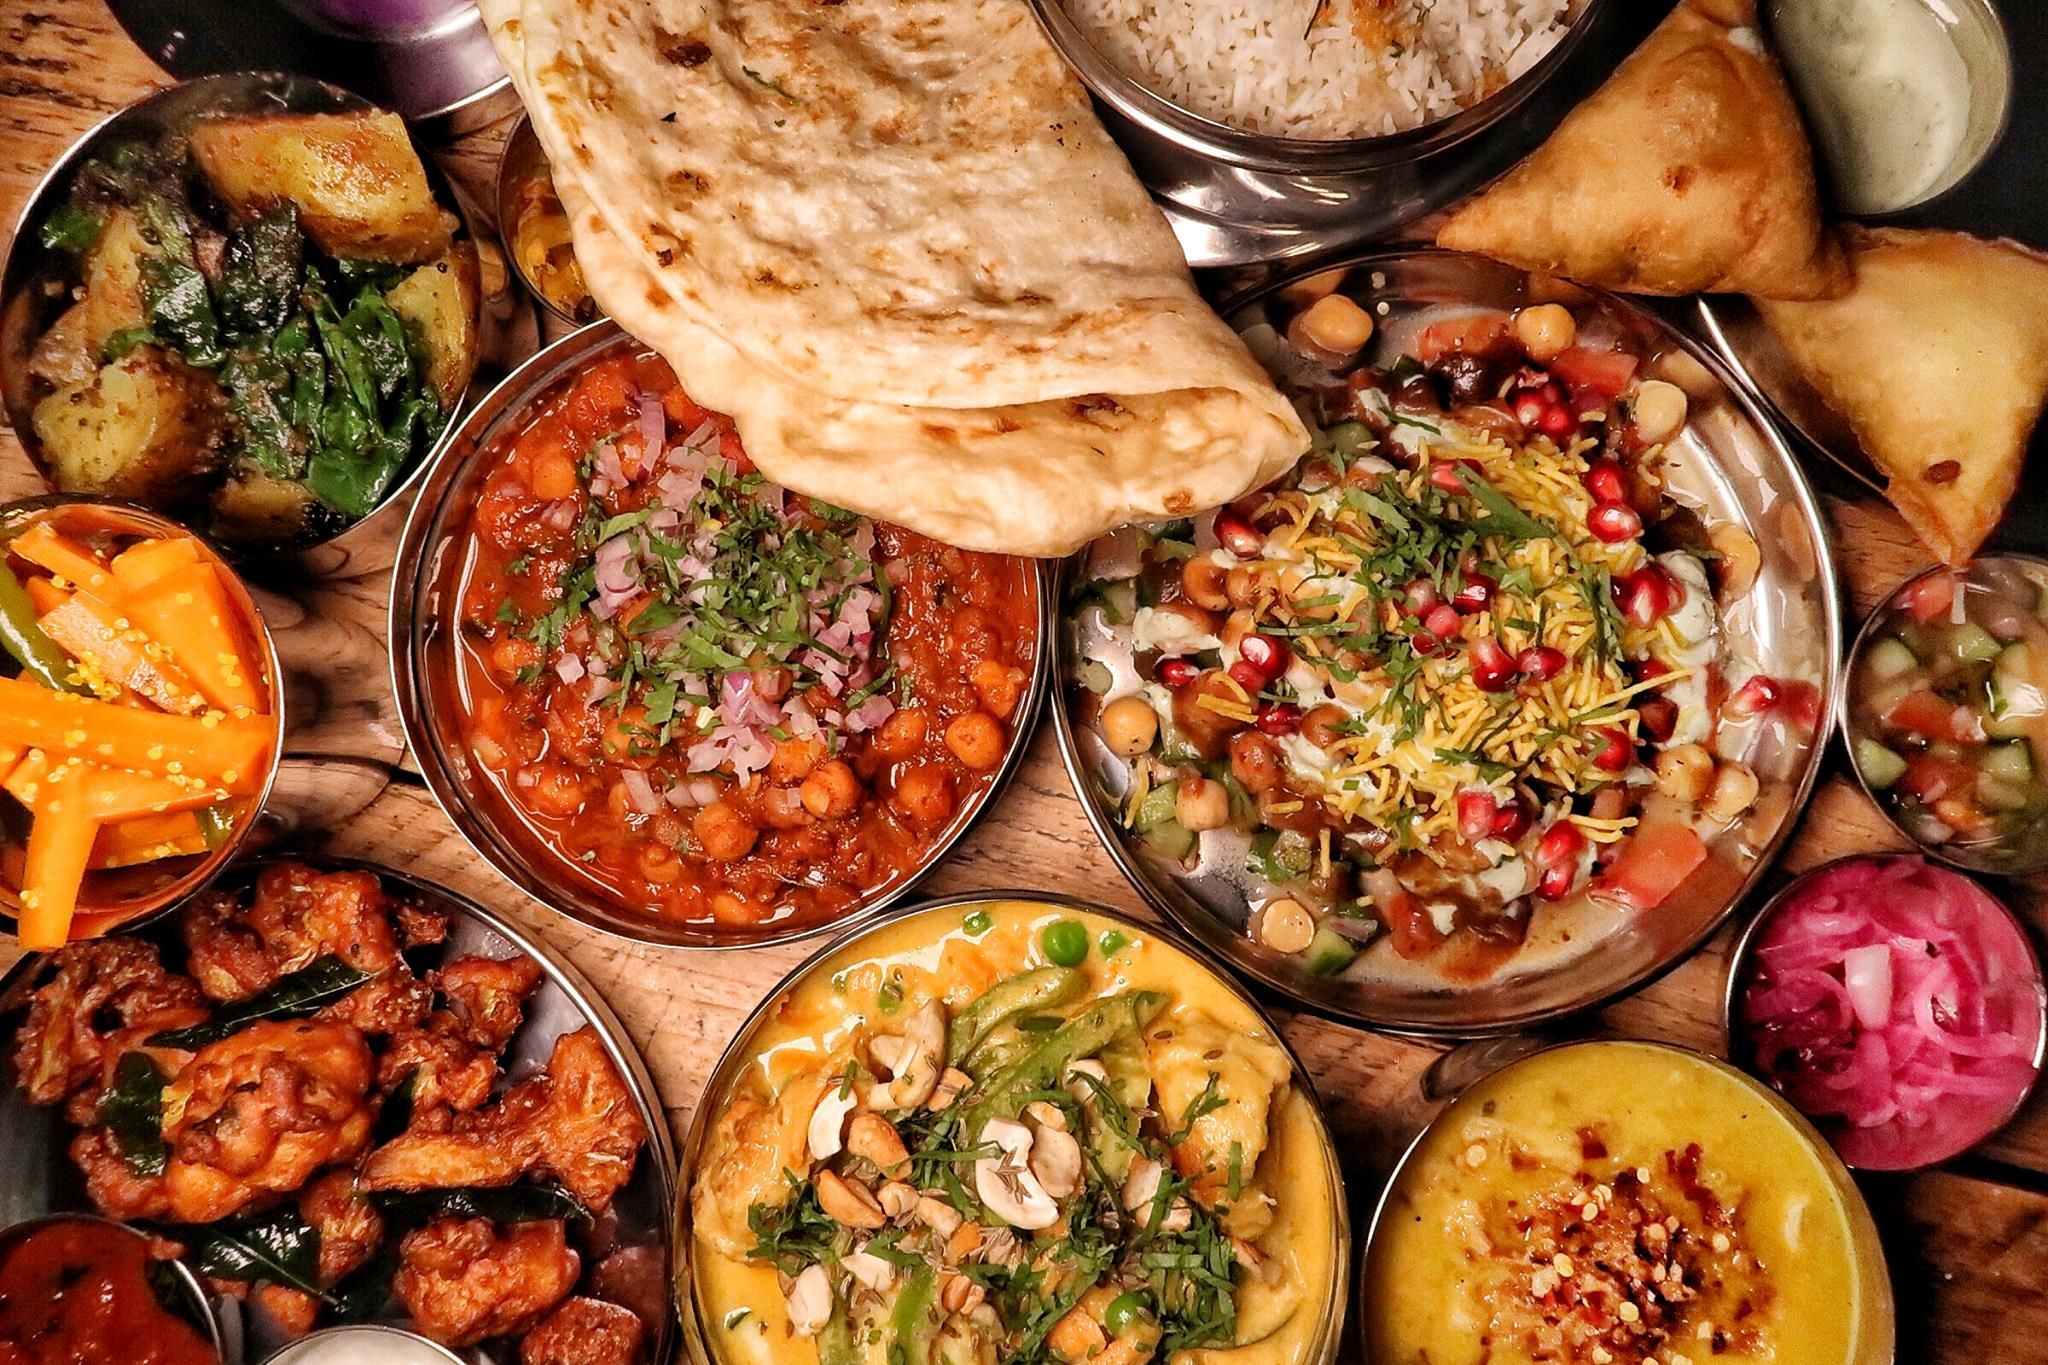 Order Food online from your favorite local Restaurants in